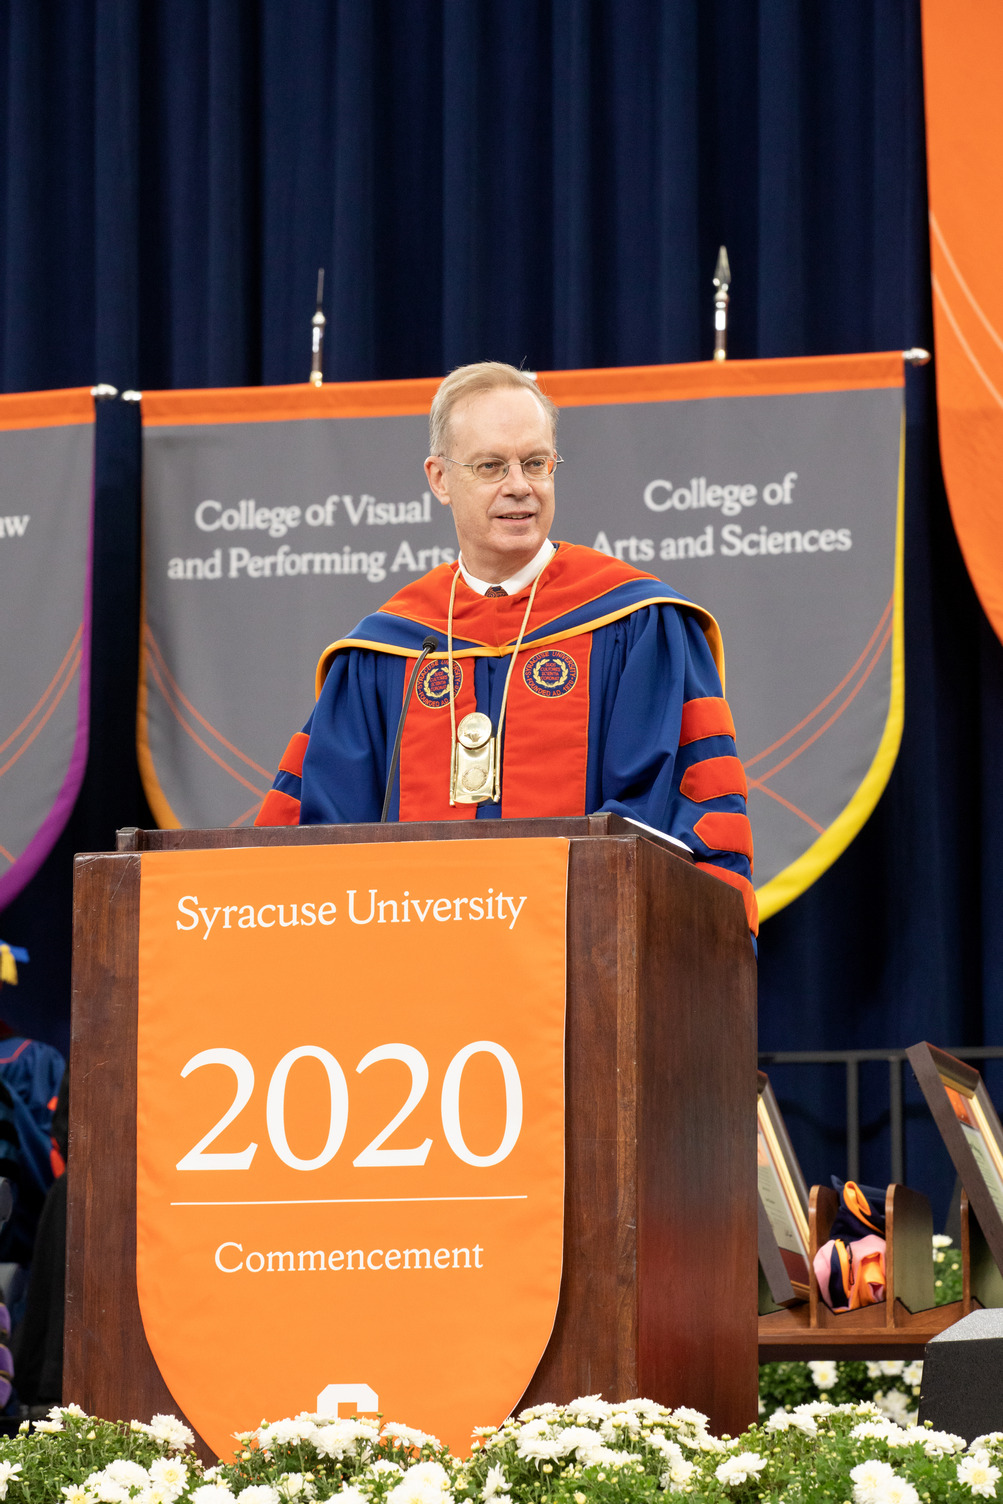 Chancellor Kent Syverud addresses the crowd from the podium at Commencement 2020